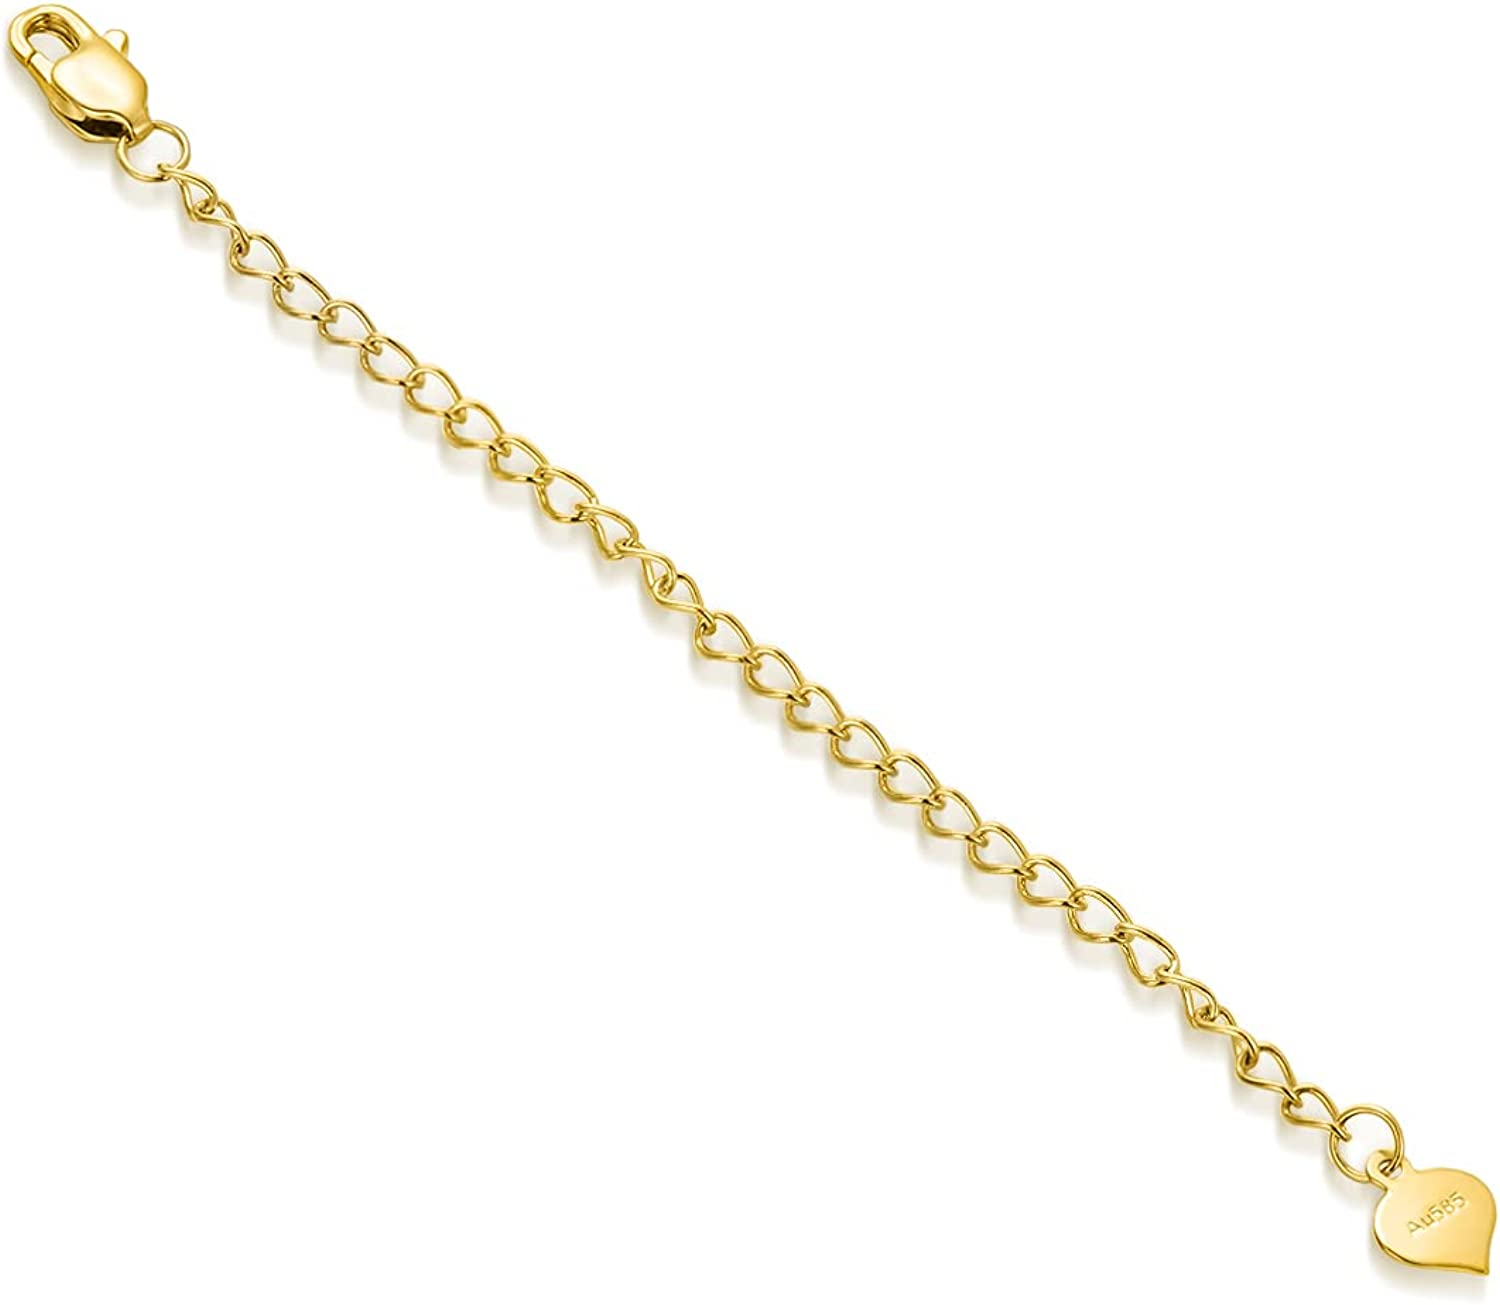 SISGEM 14K Real Gold 2/3/4 Inch Necklace Chain Extender with Lobster Claw Clasp, Dainty Durable Strong Removable Chain Extender for Gold Necklace Bracelet Anklet Jewelry